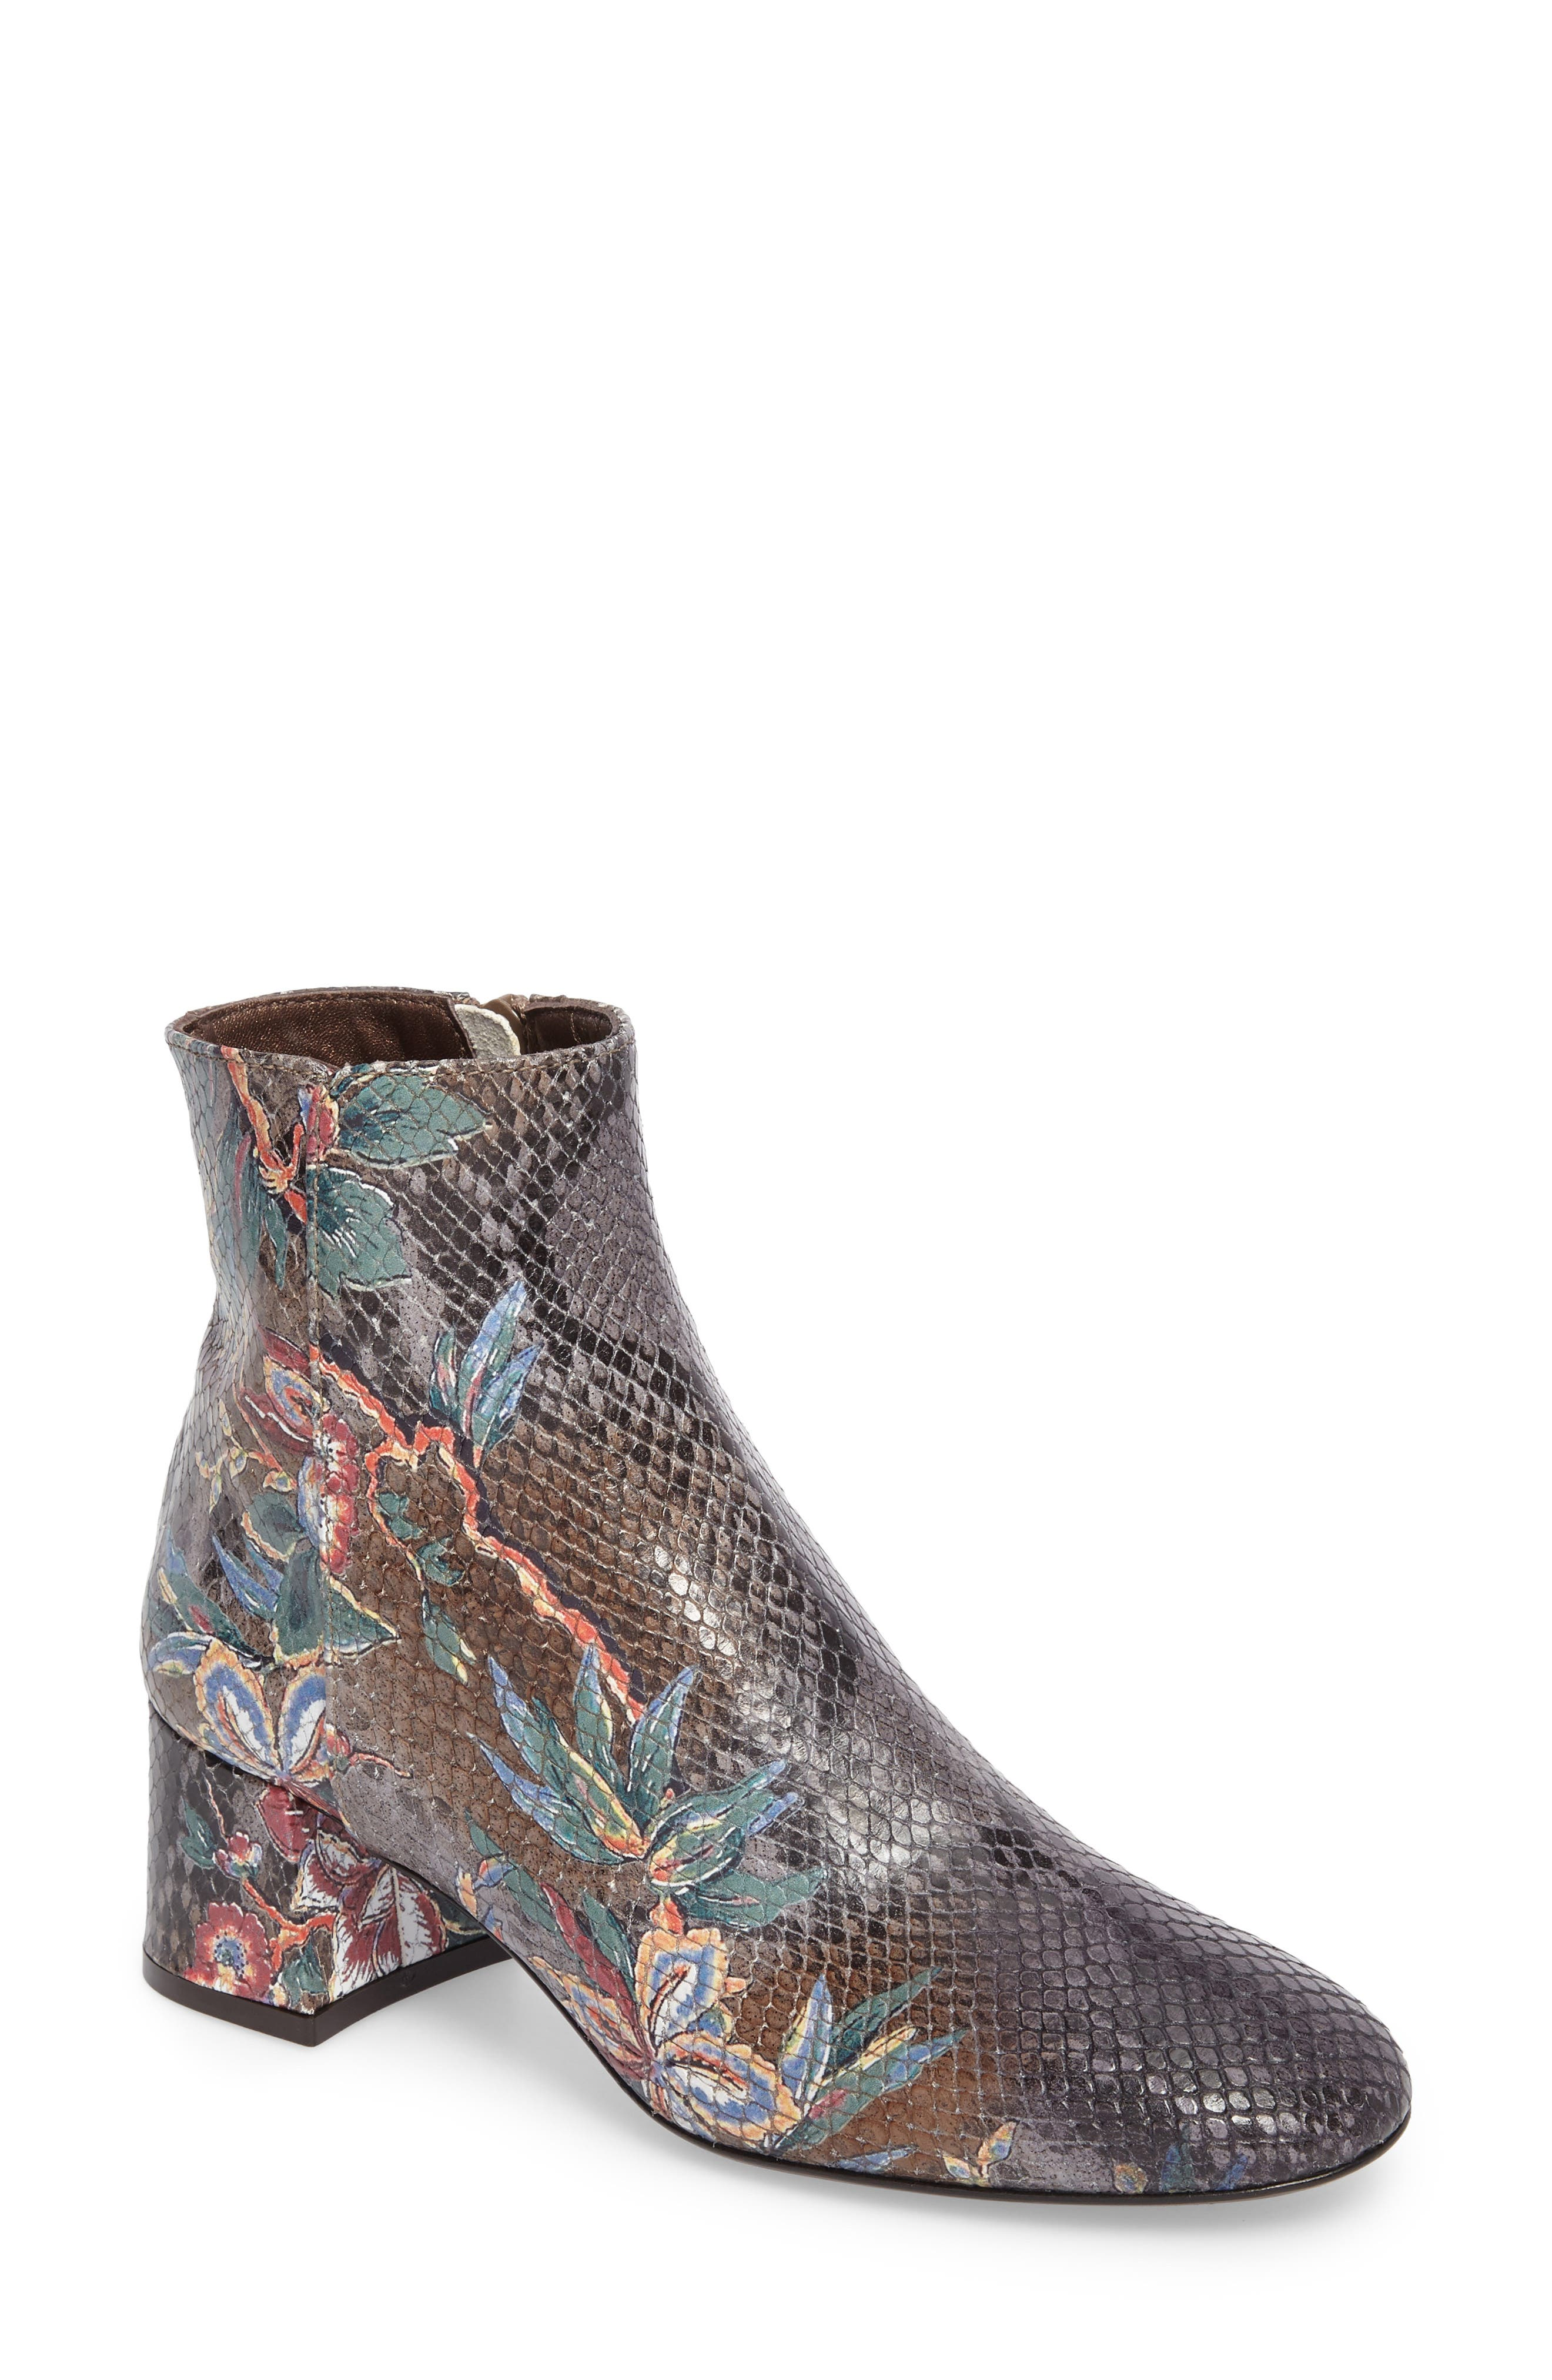 Cocorito Block Heel Bootie,                         Main,                         color, Marble Taupe Leather